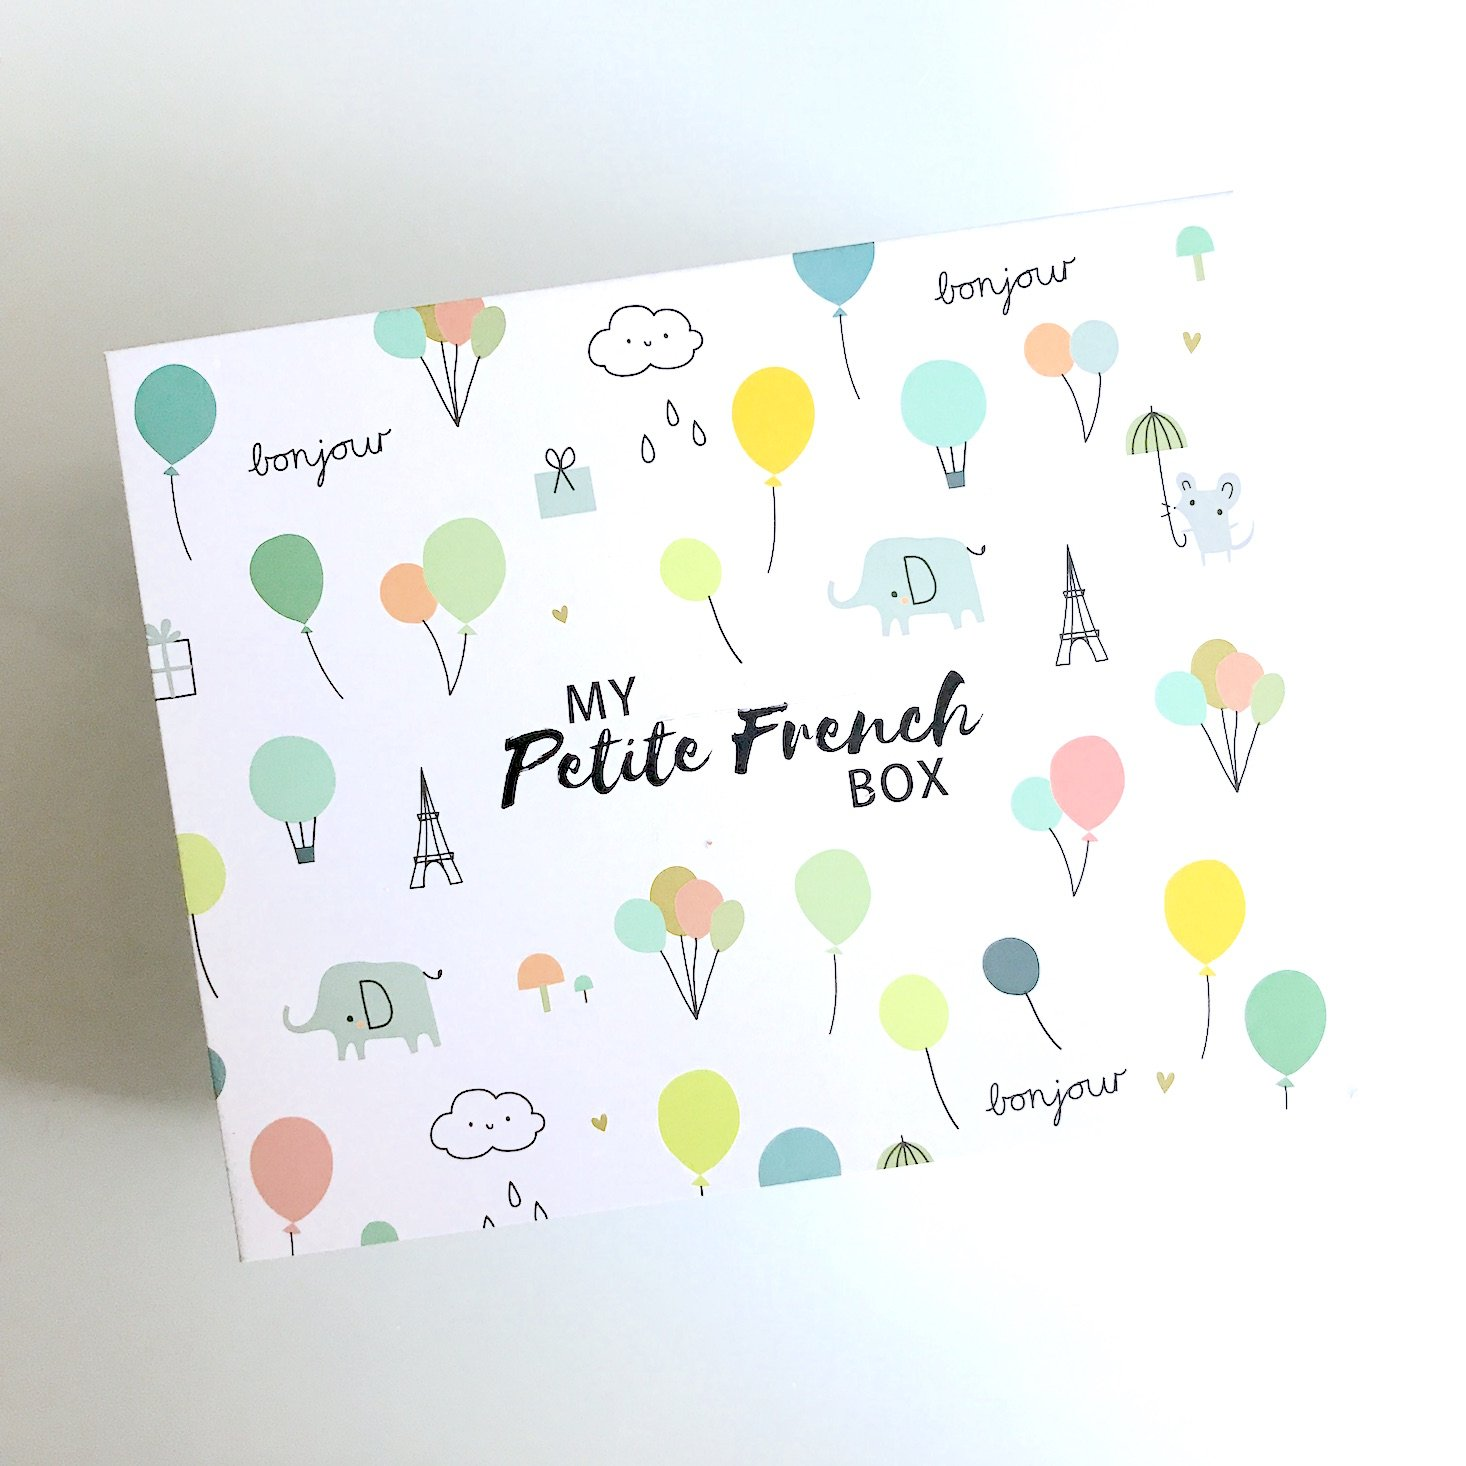 My Petite French Box February 2018